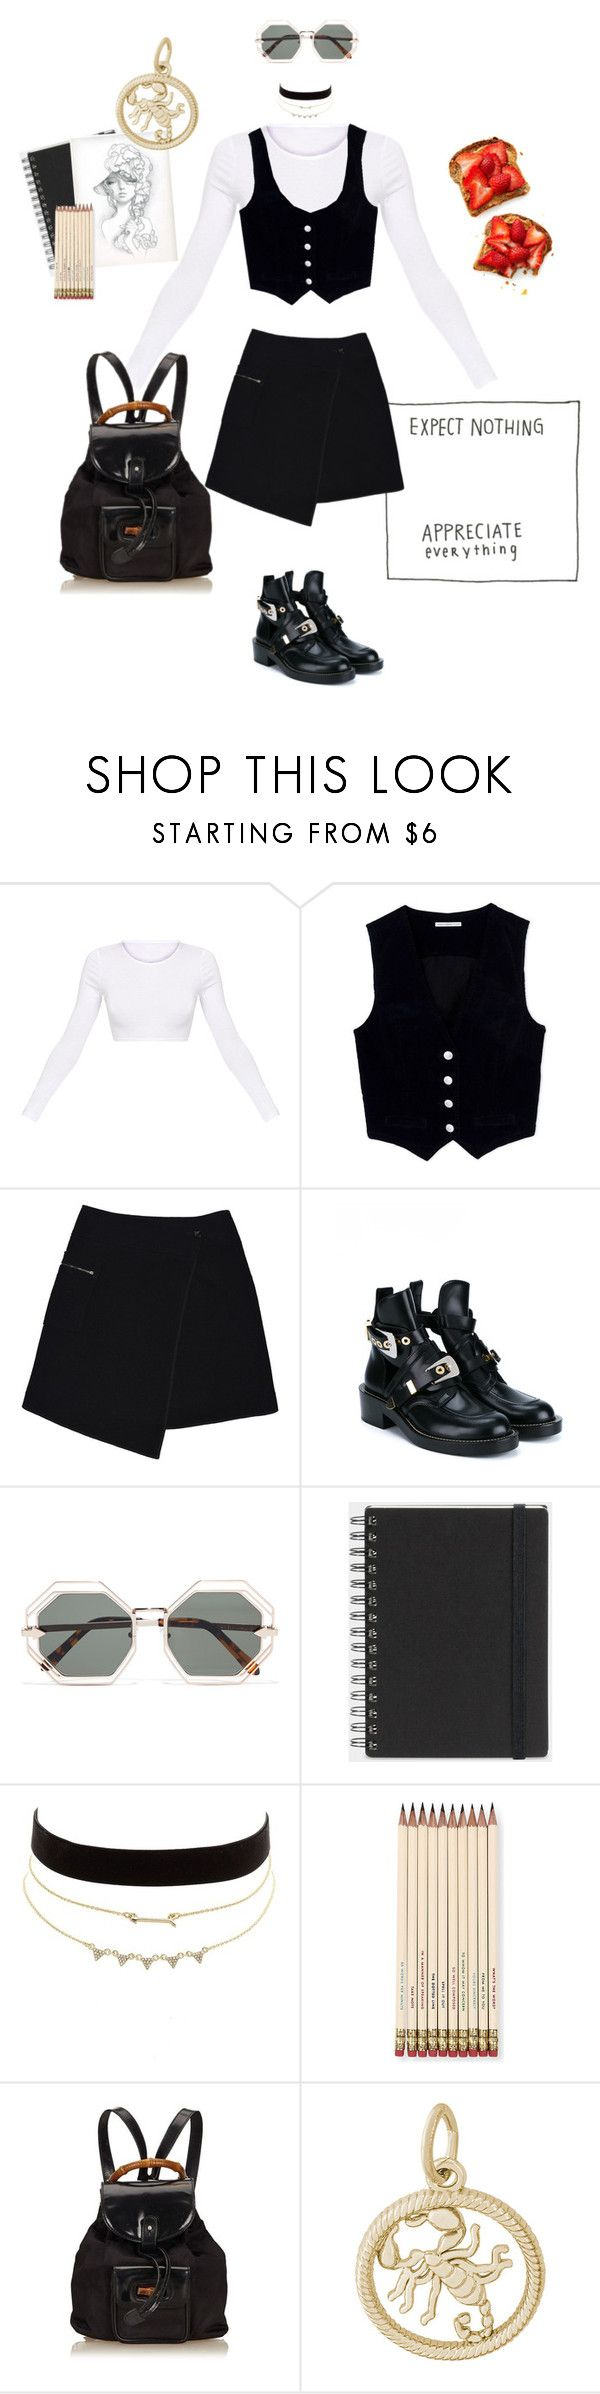 """""""Forever Late (Art School #3)"""" by aurora-cristaux ❤ liked on Polyvore featuring AG Adriano Goldschmied, MARC CAIN, Balenciaga, Karen Walker, Muji, Charlotte Russe, Kate Spade, Gucci and Rembrandt Charms"""